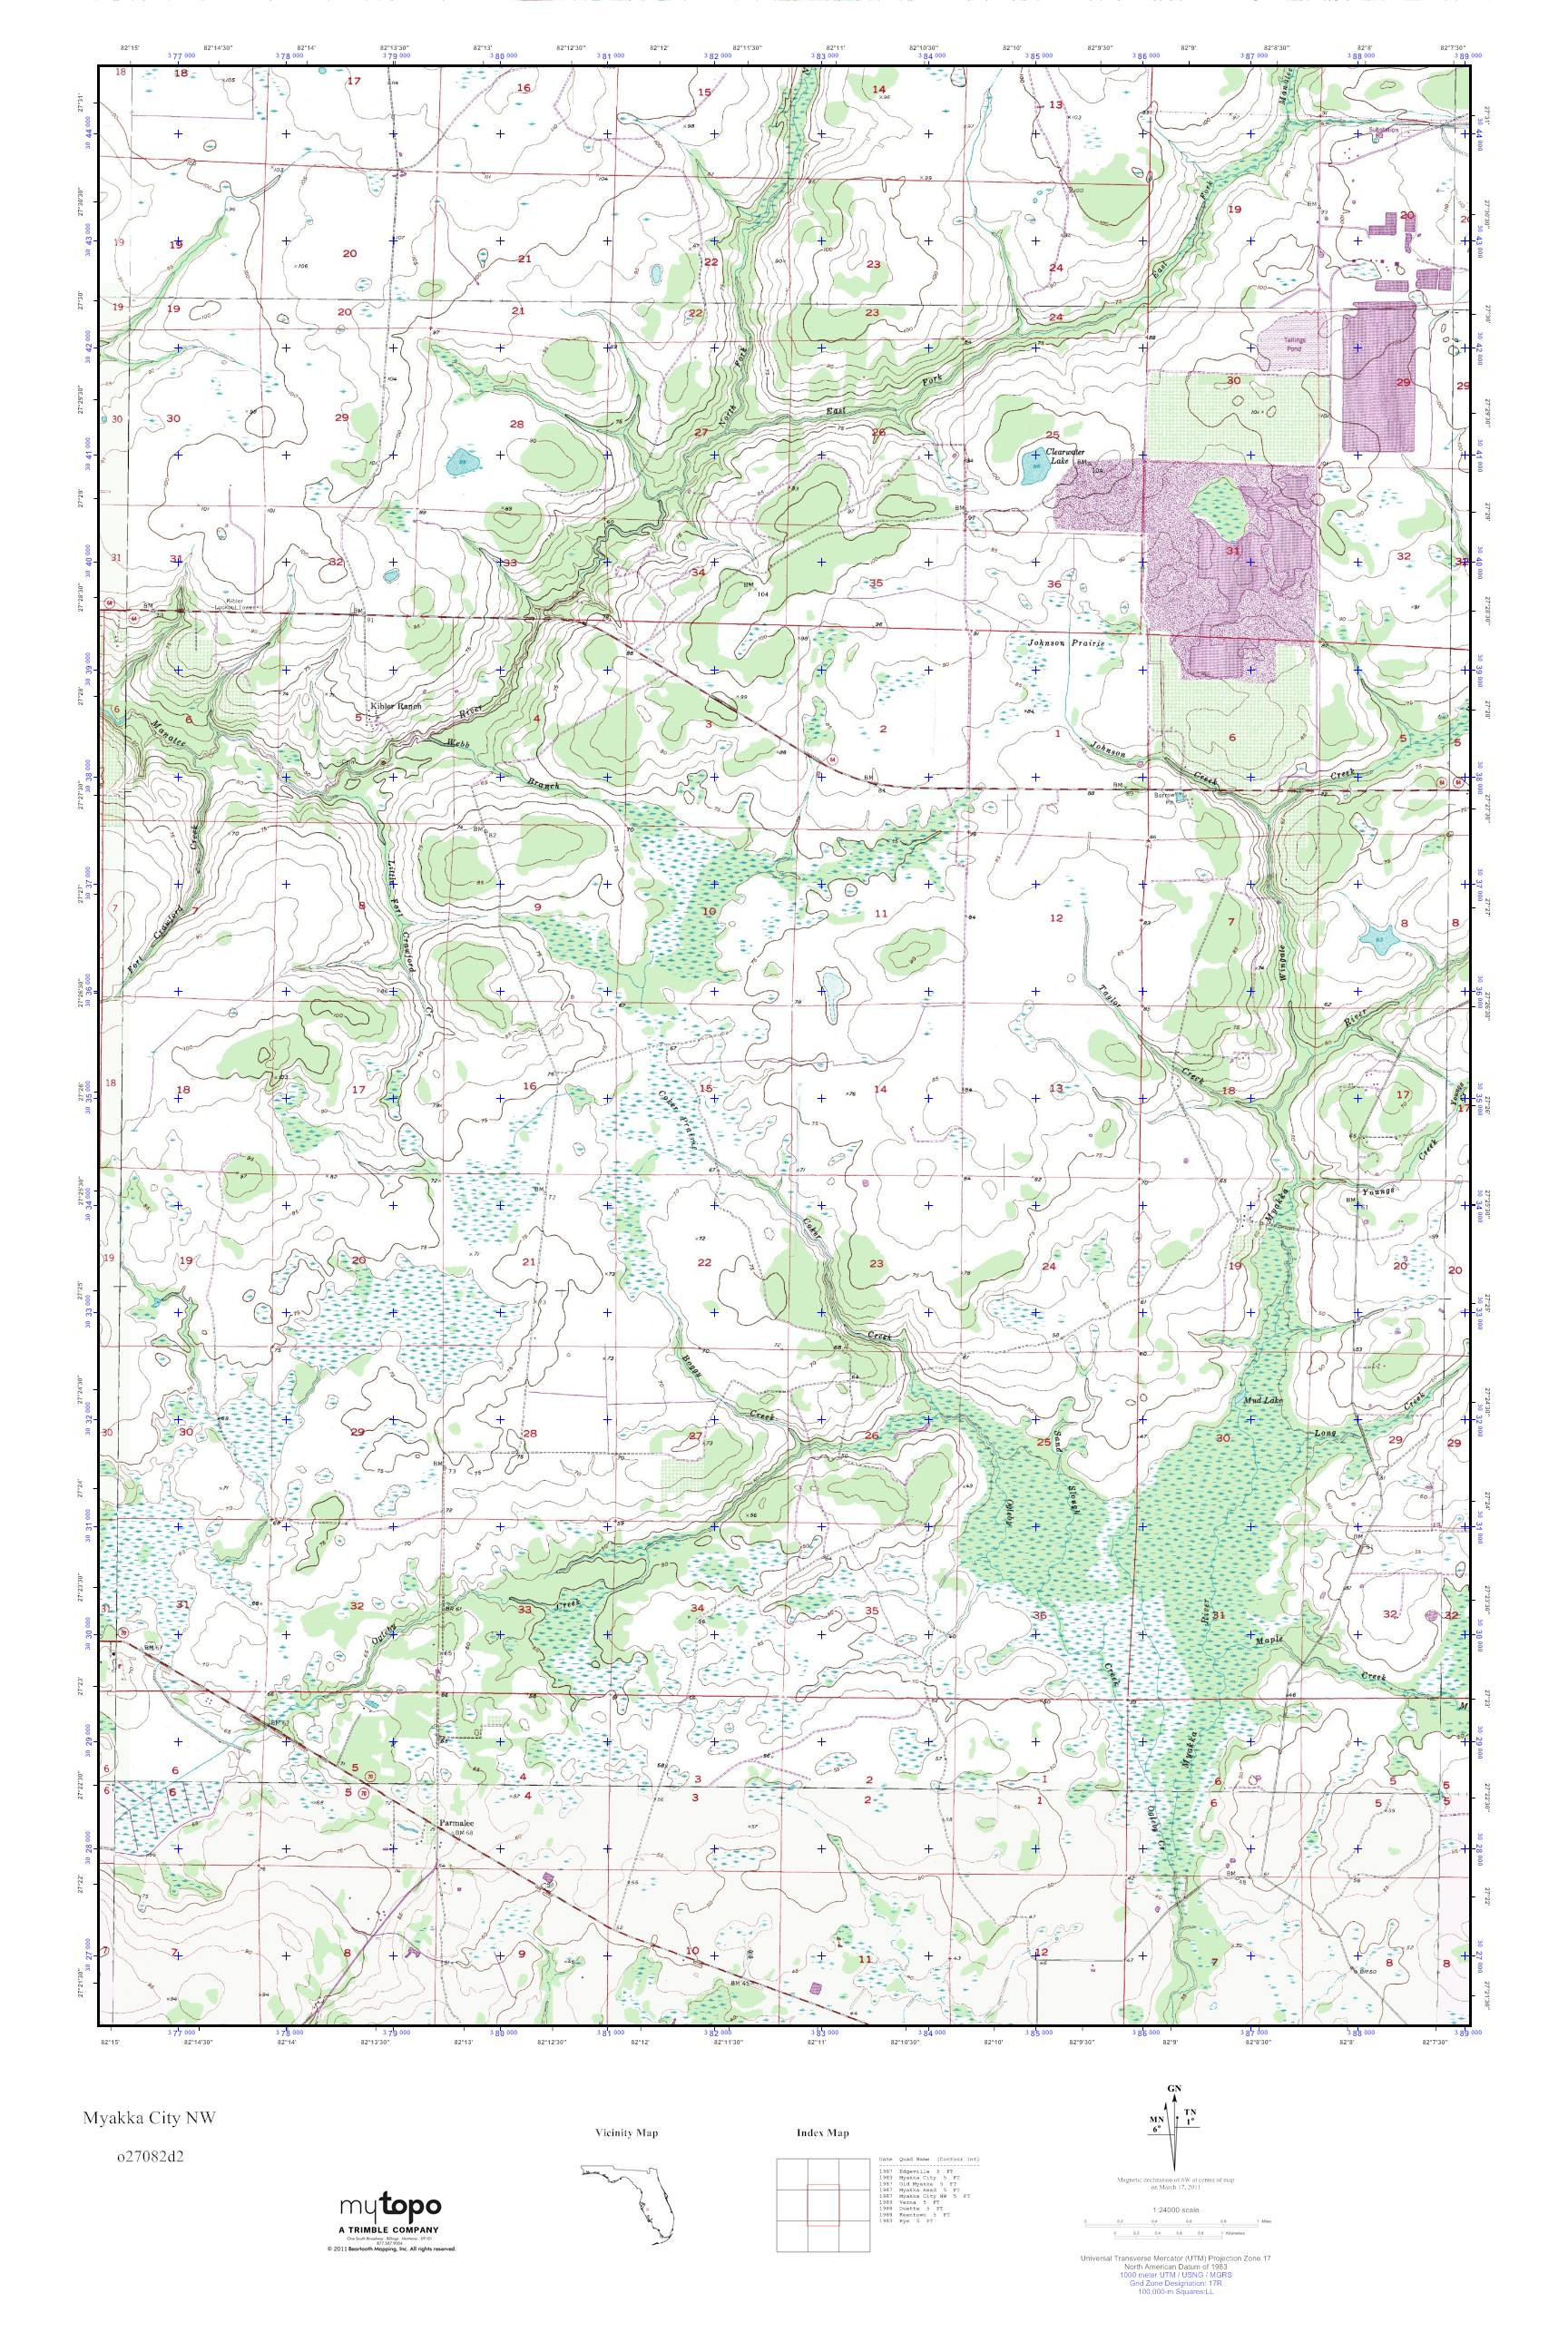 Myakka City Florida Map.Mytopo Myakka City Nw Florida Usgs Quad Topo Map